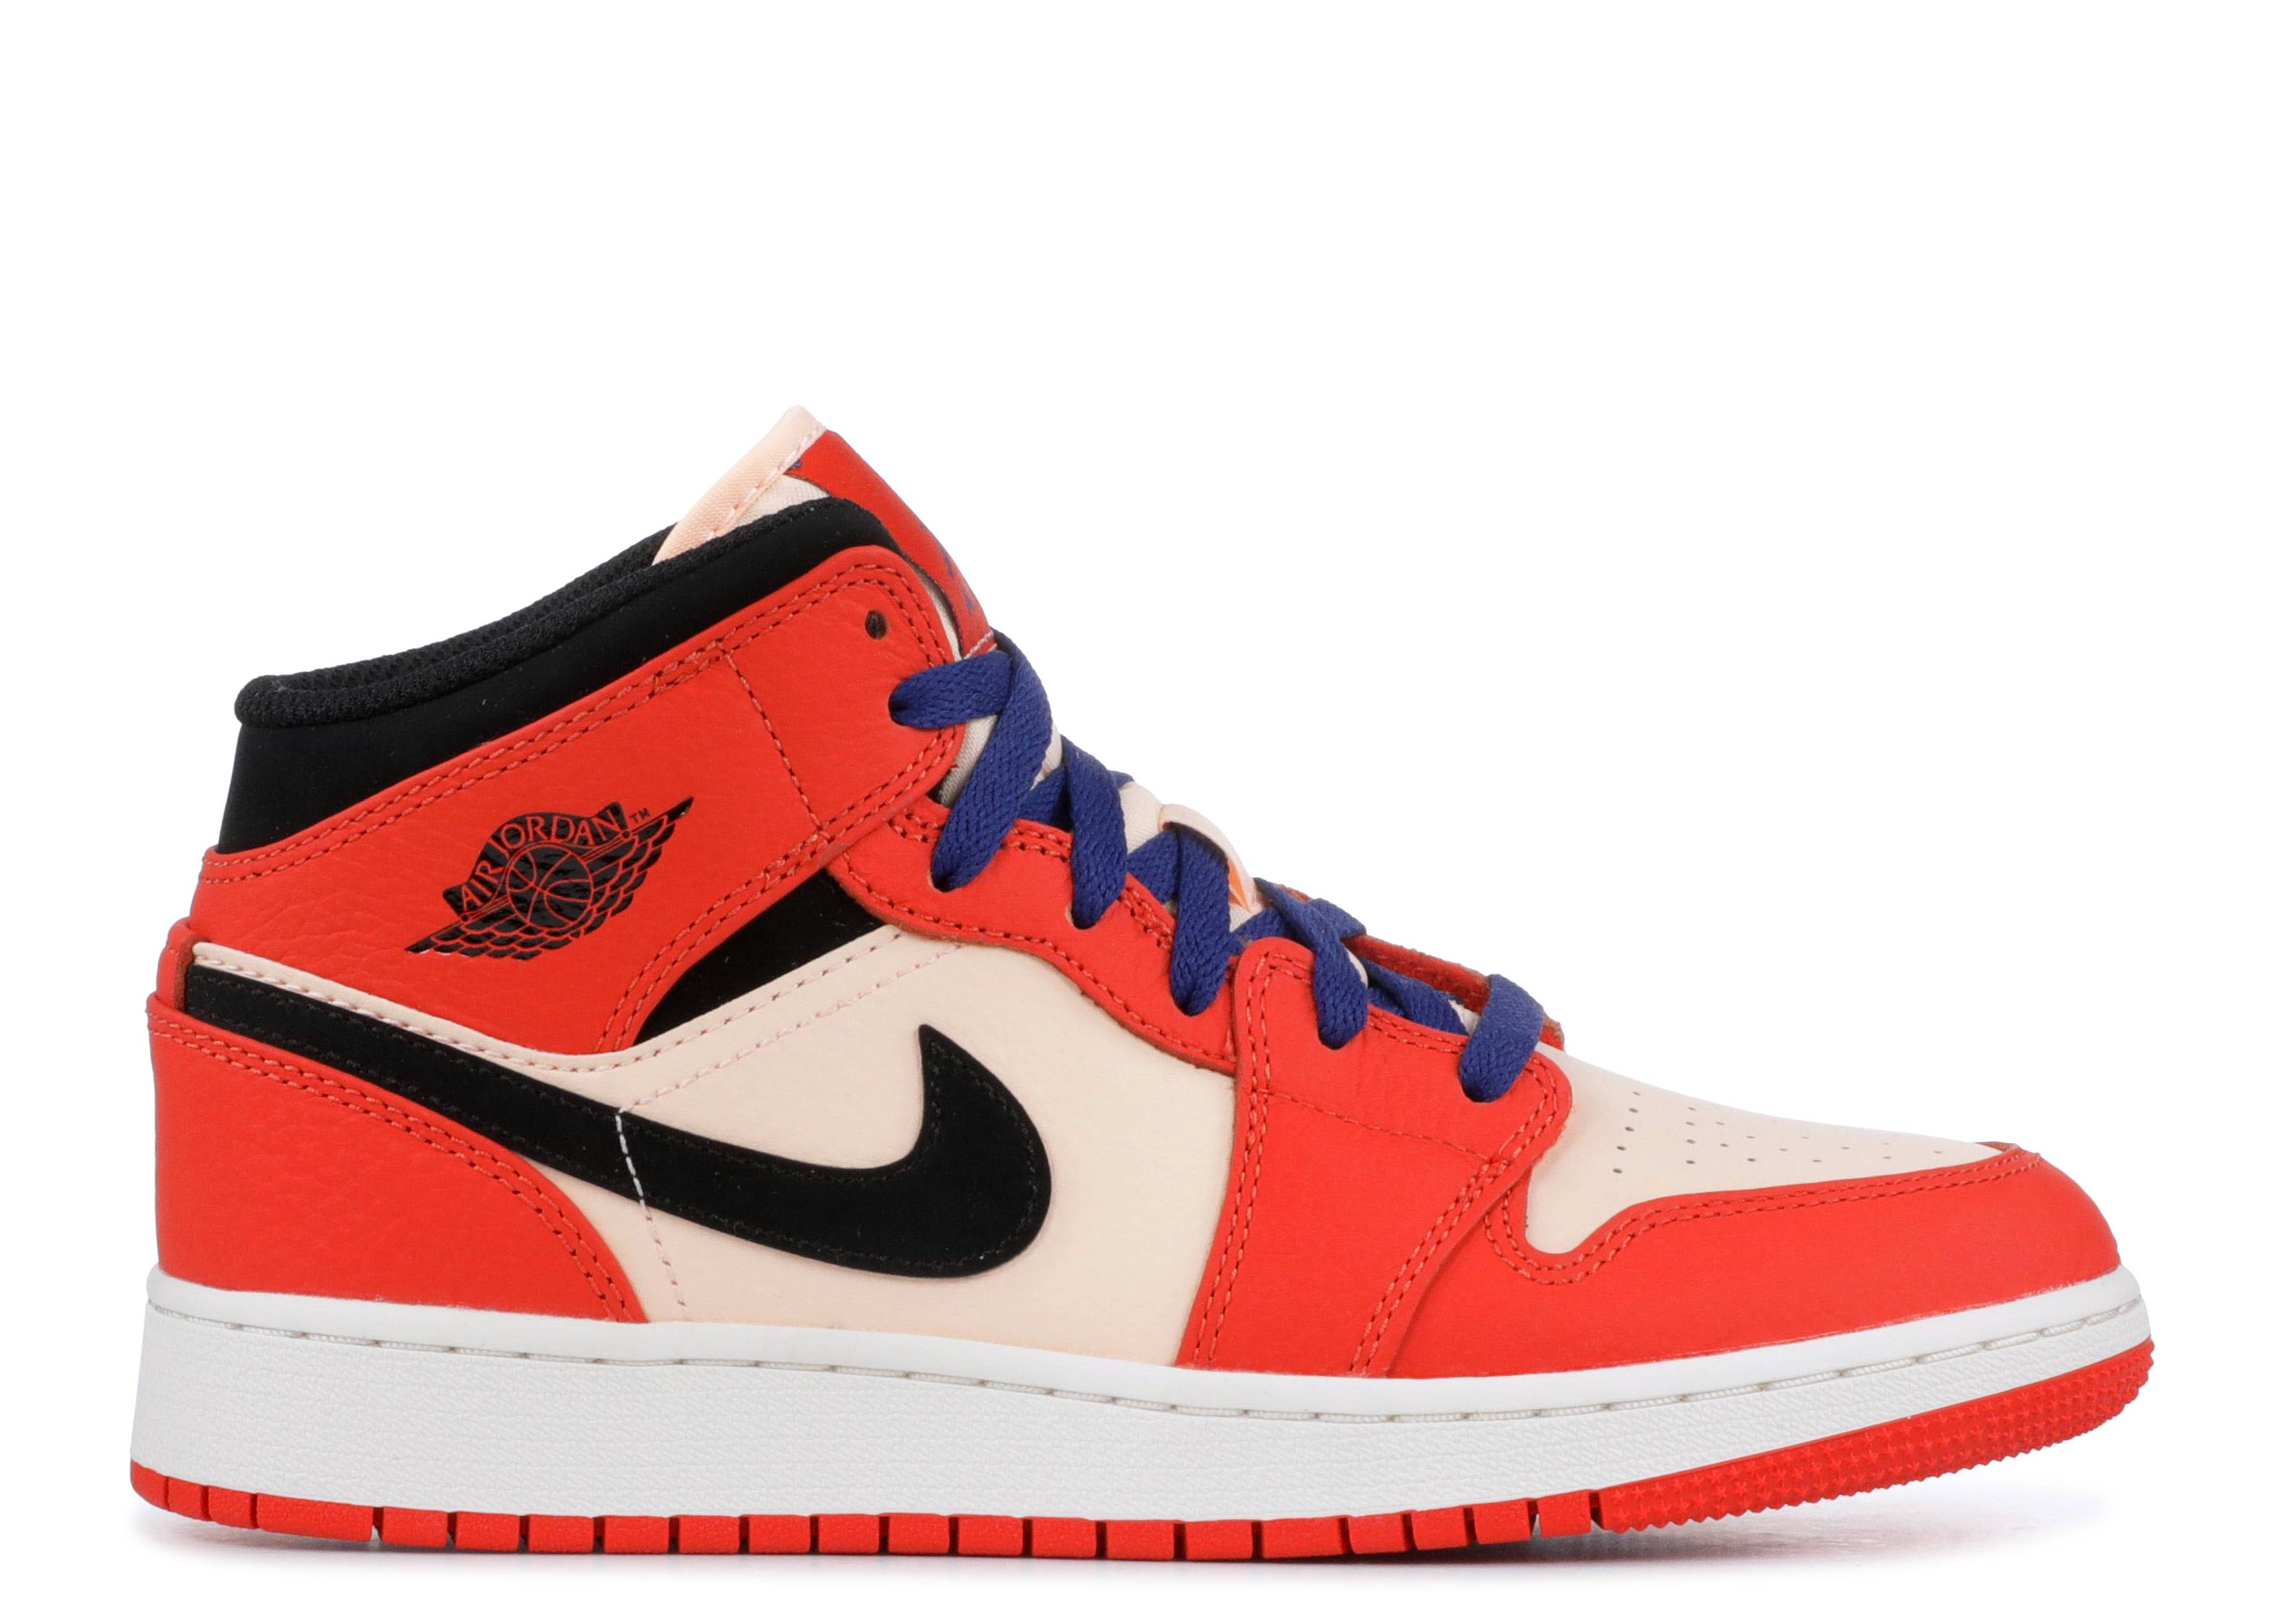 Air Jordan 1 Mid Se - Air Jordan - bq6931 800 - team orange black ... a01fdc48c